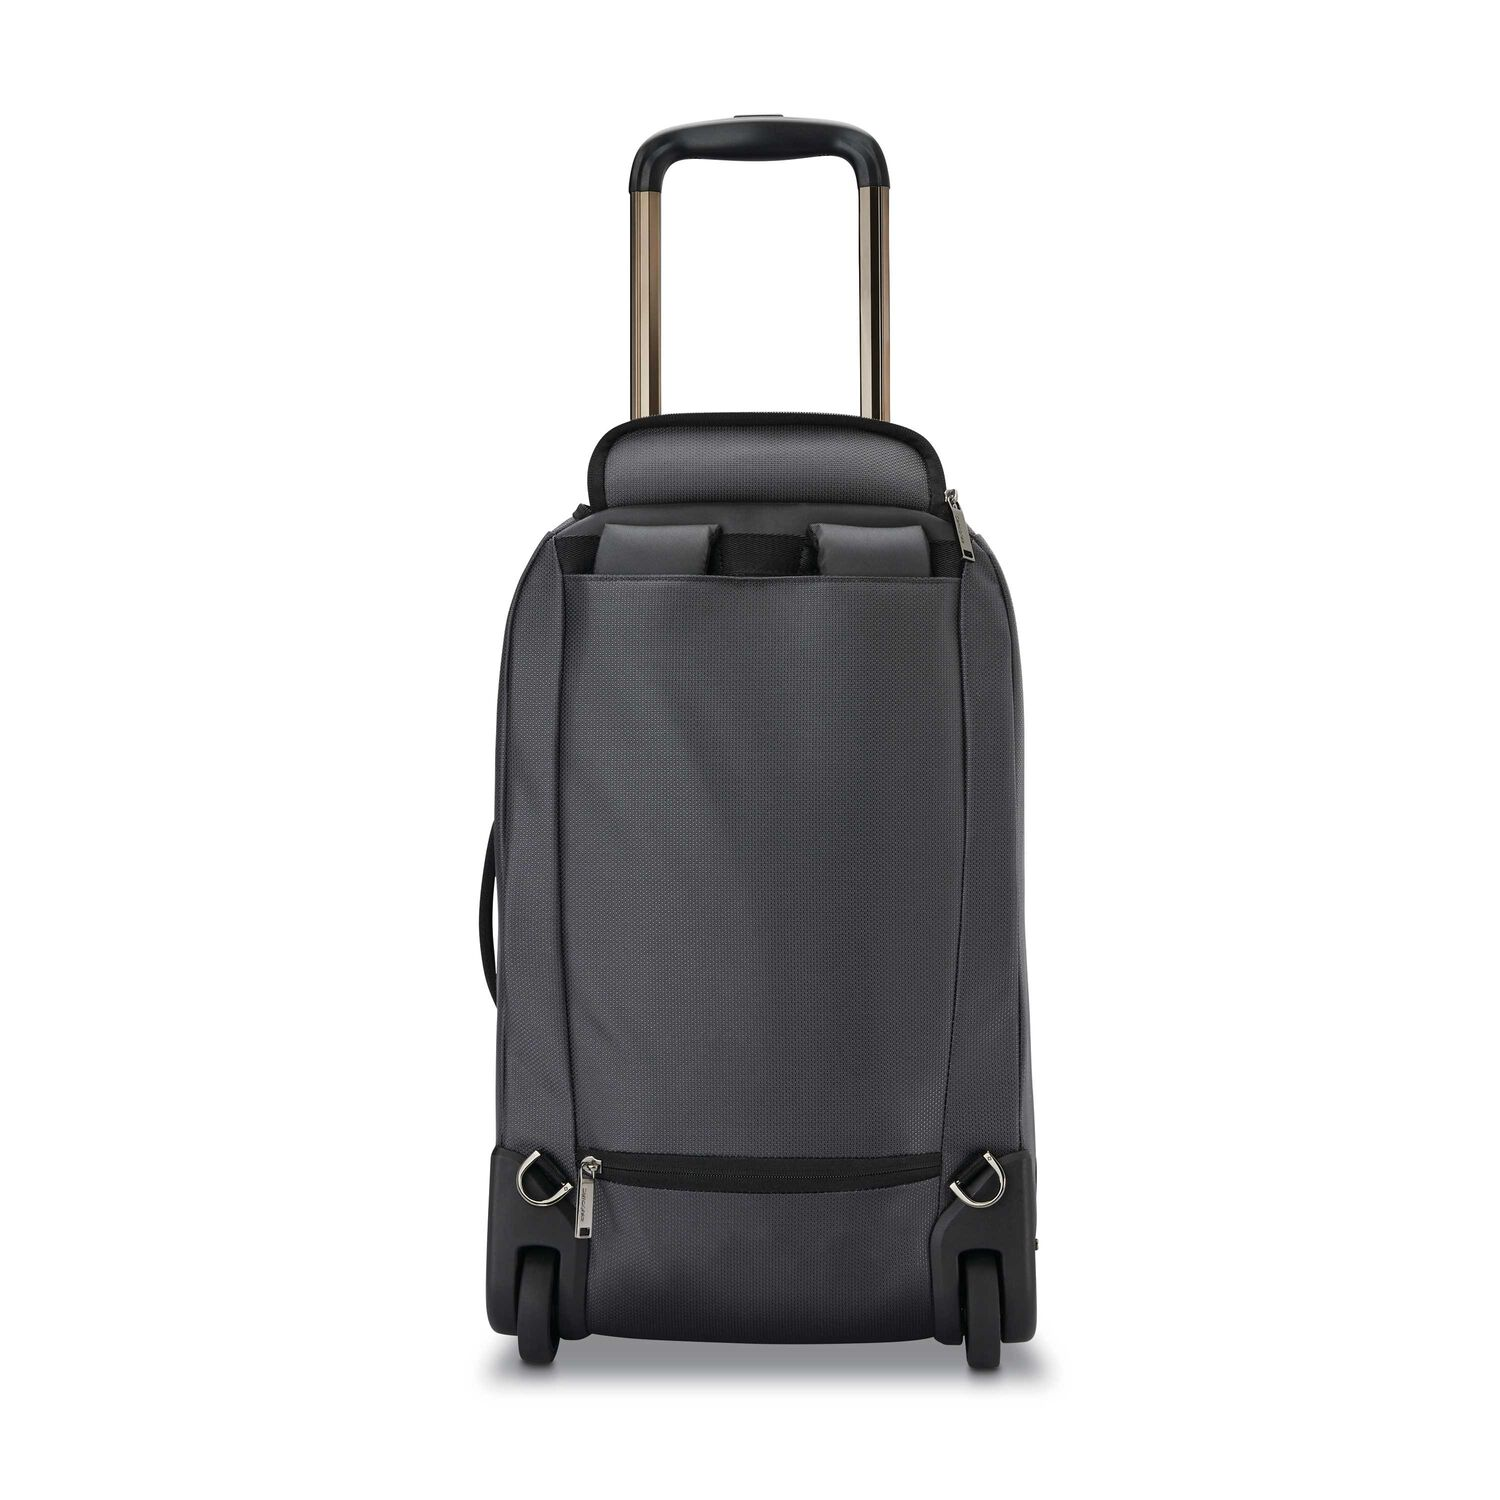 d0594fd61 Play; Samsonite Encompass Convertible Wheeled Backpack in the color  Anthracite Grey.